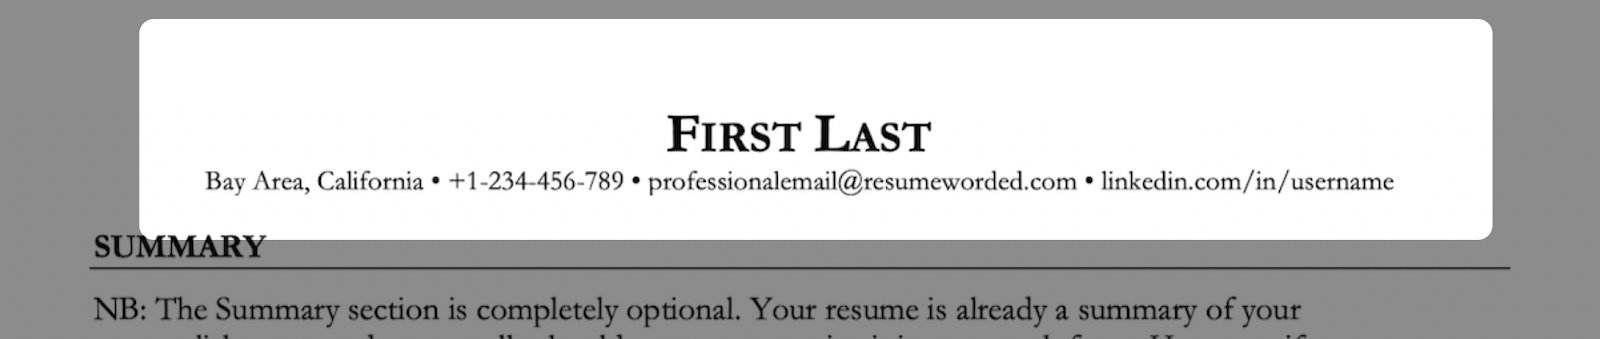 An example of a resume header for an experienced professional